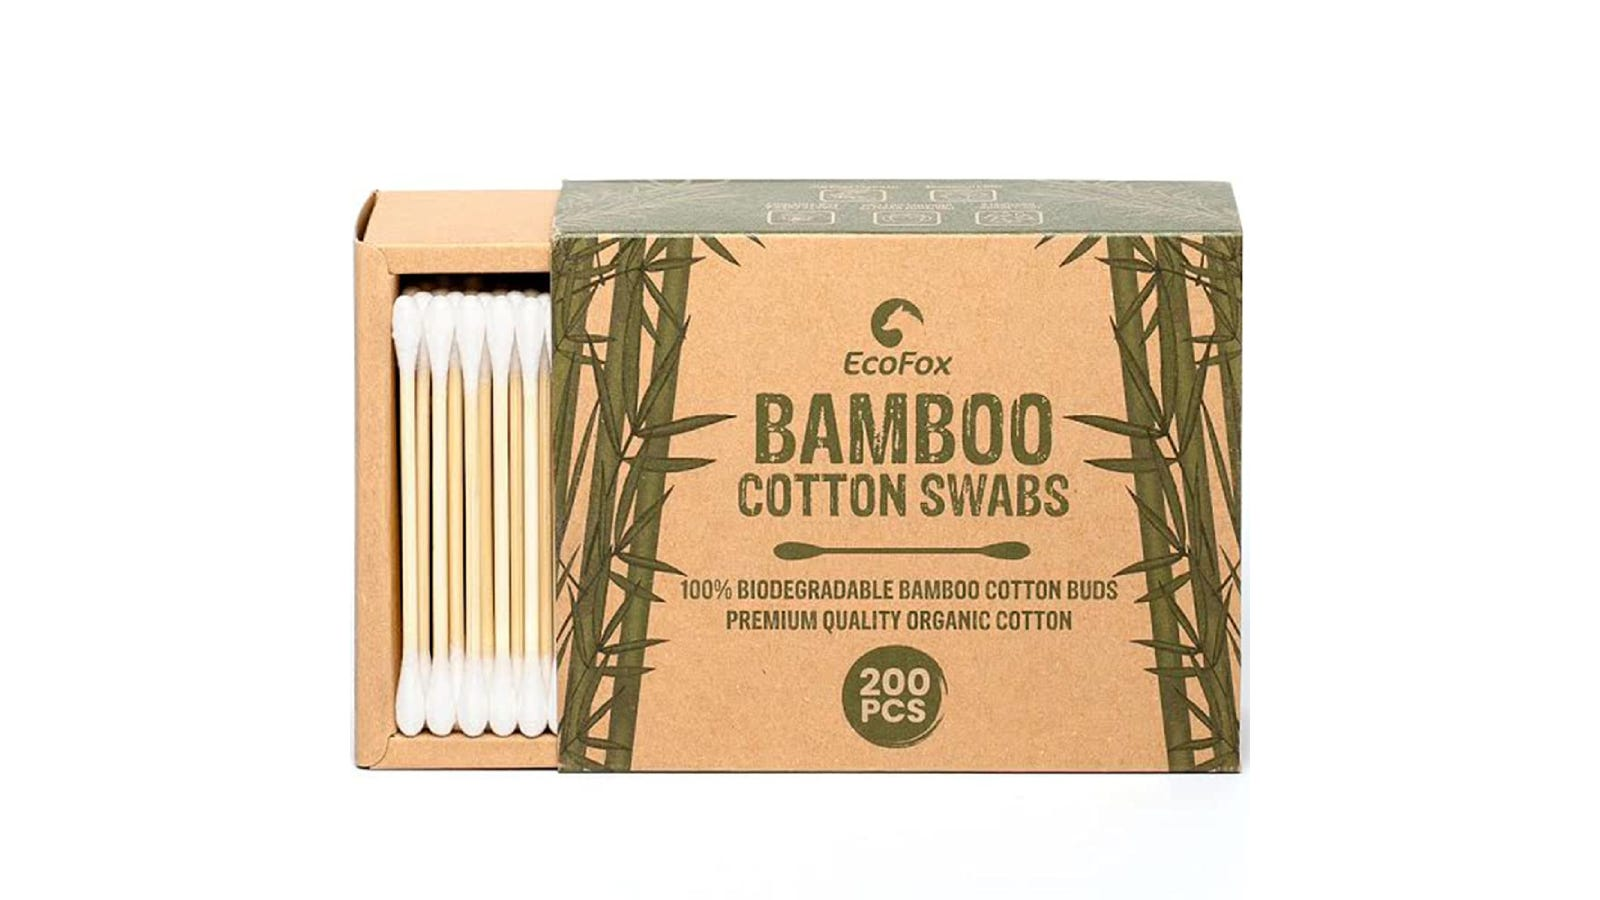 A set of cotton swabs shown inside the slide-out packaging that's decorated in bamboo illustrations.